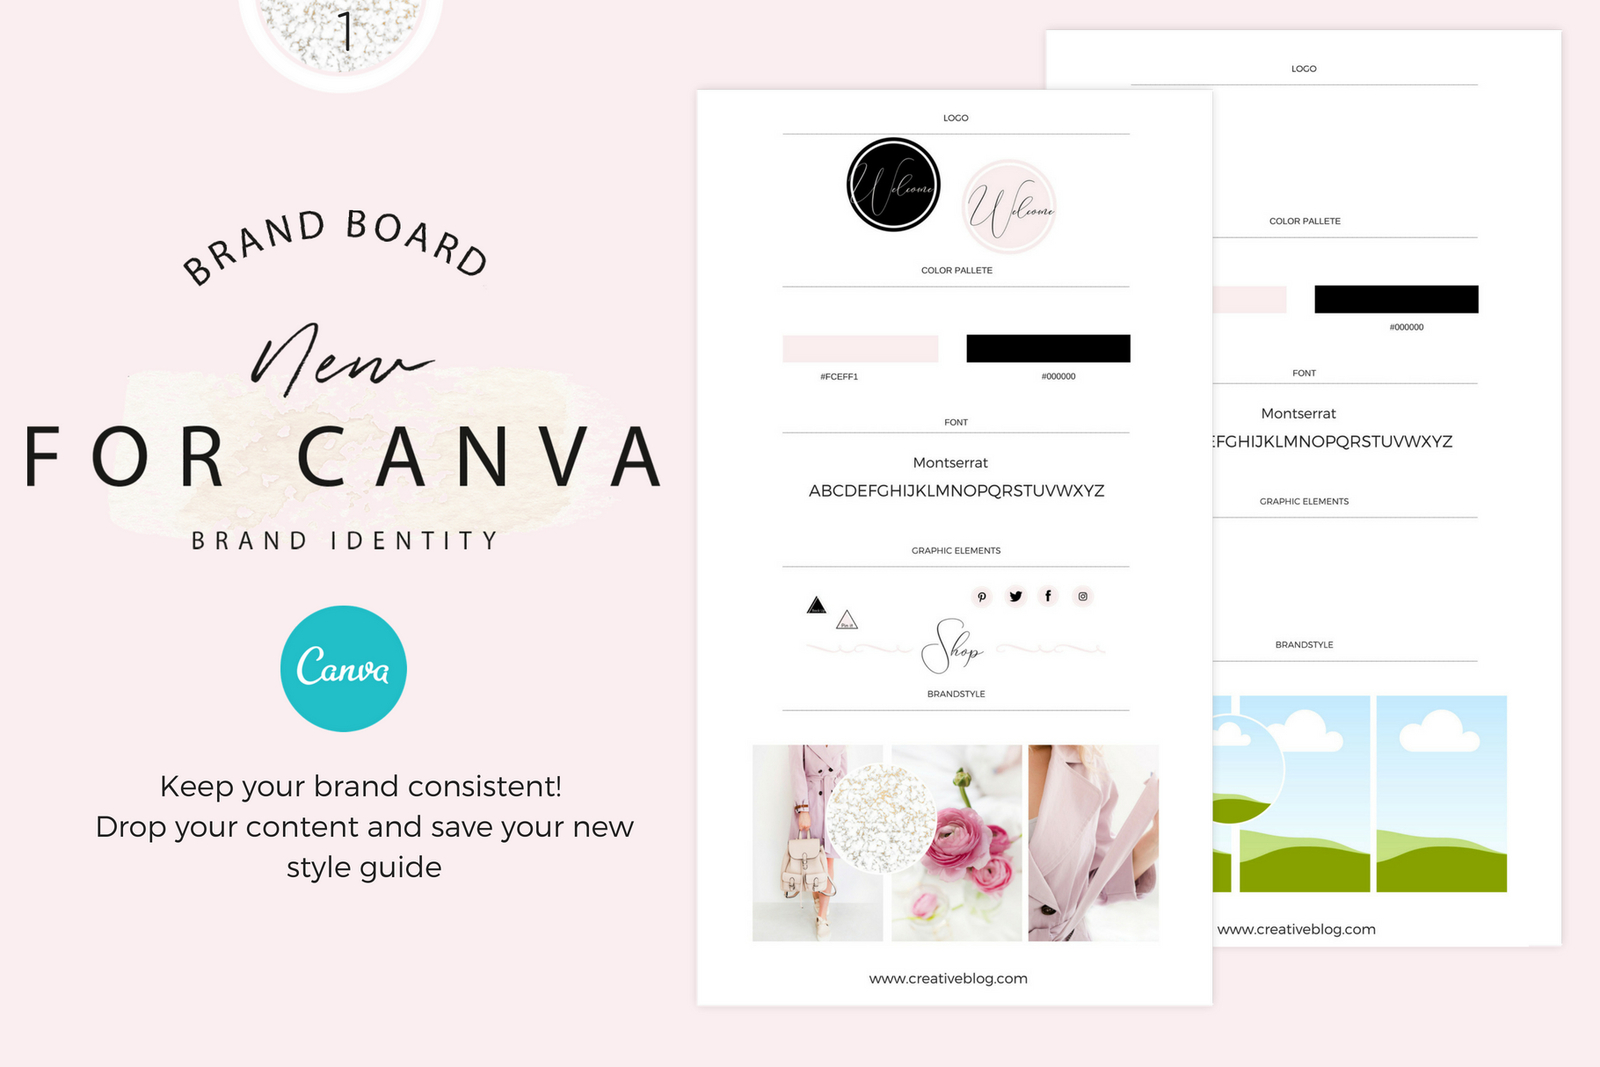 Brandboards for Canva